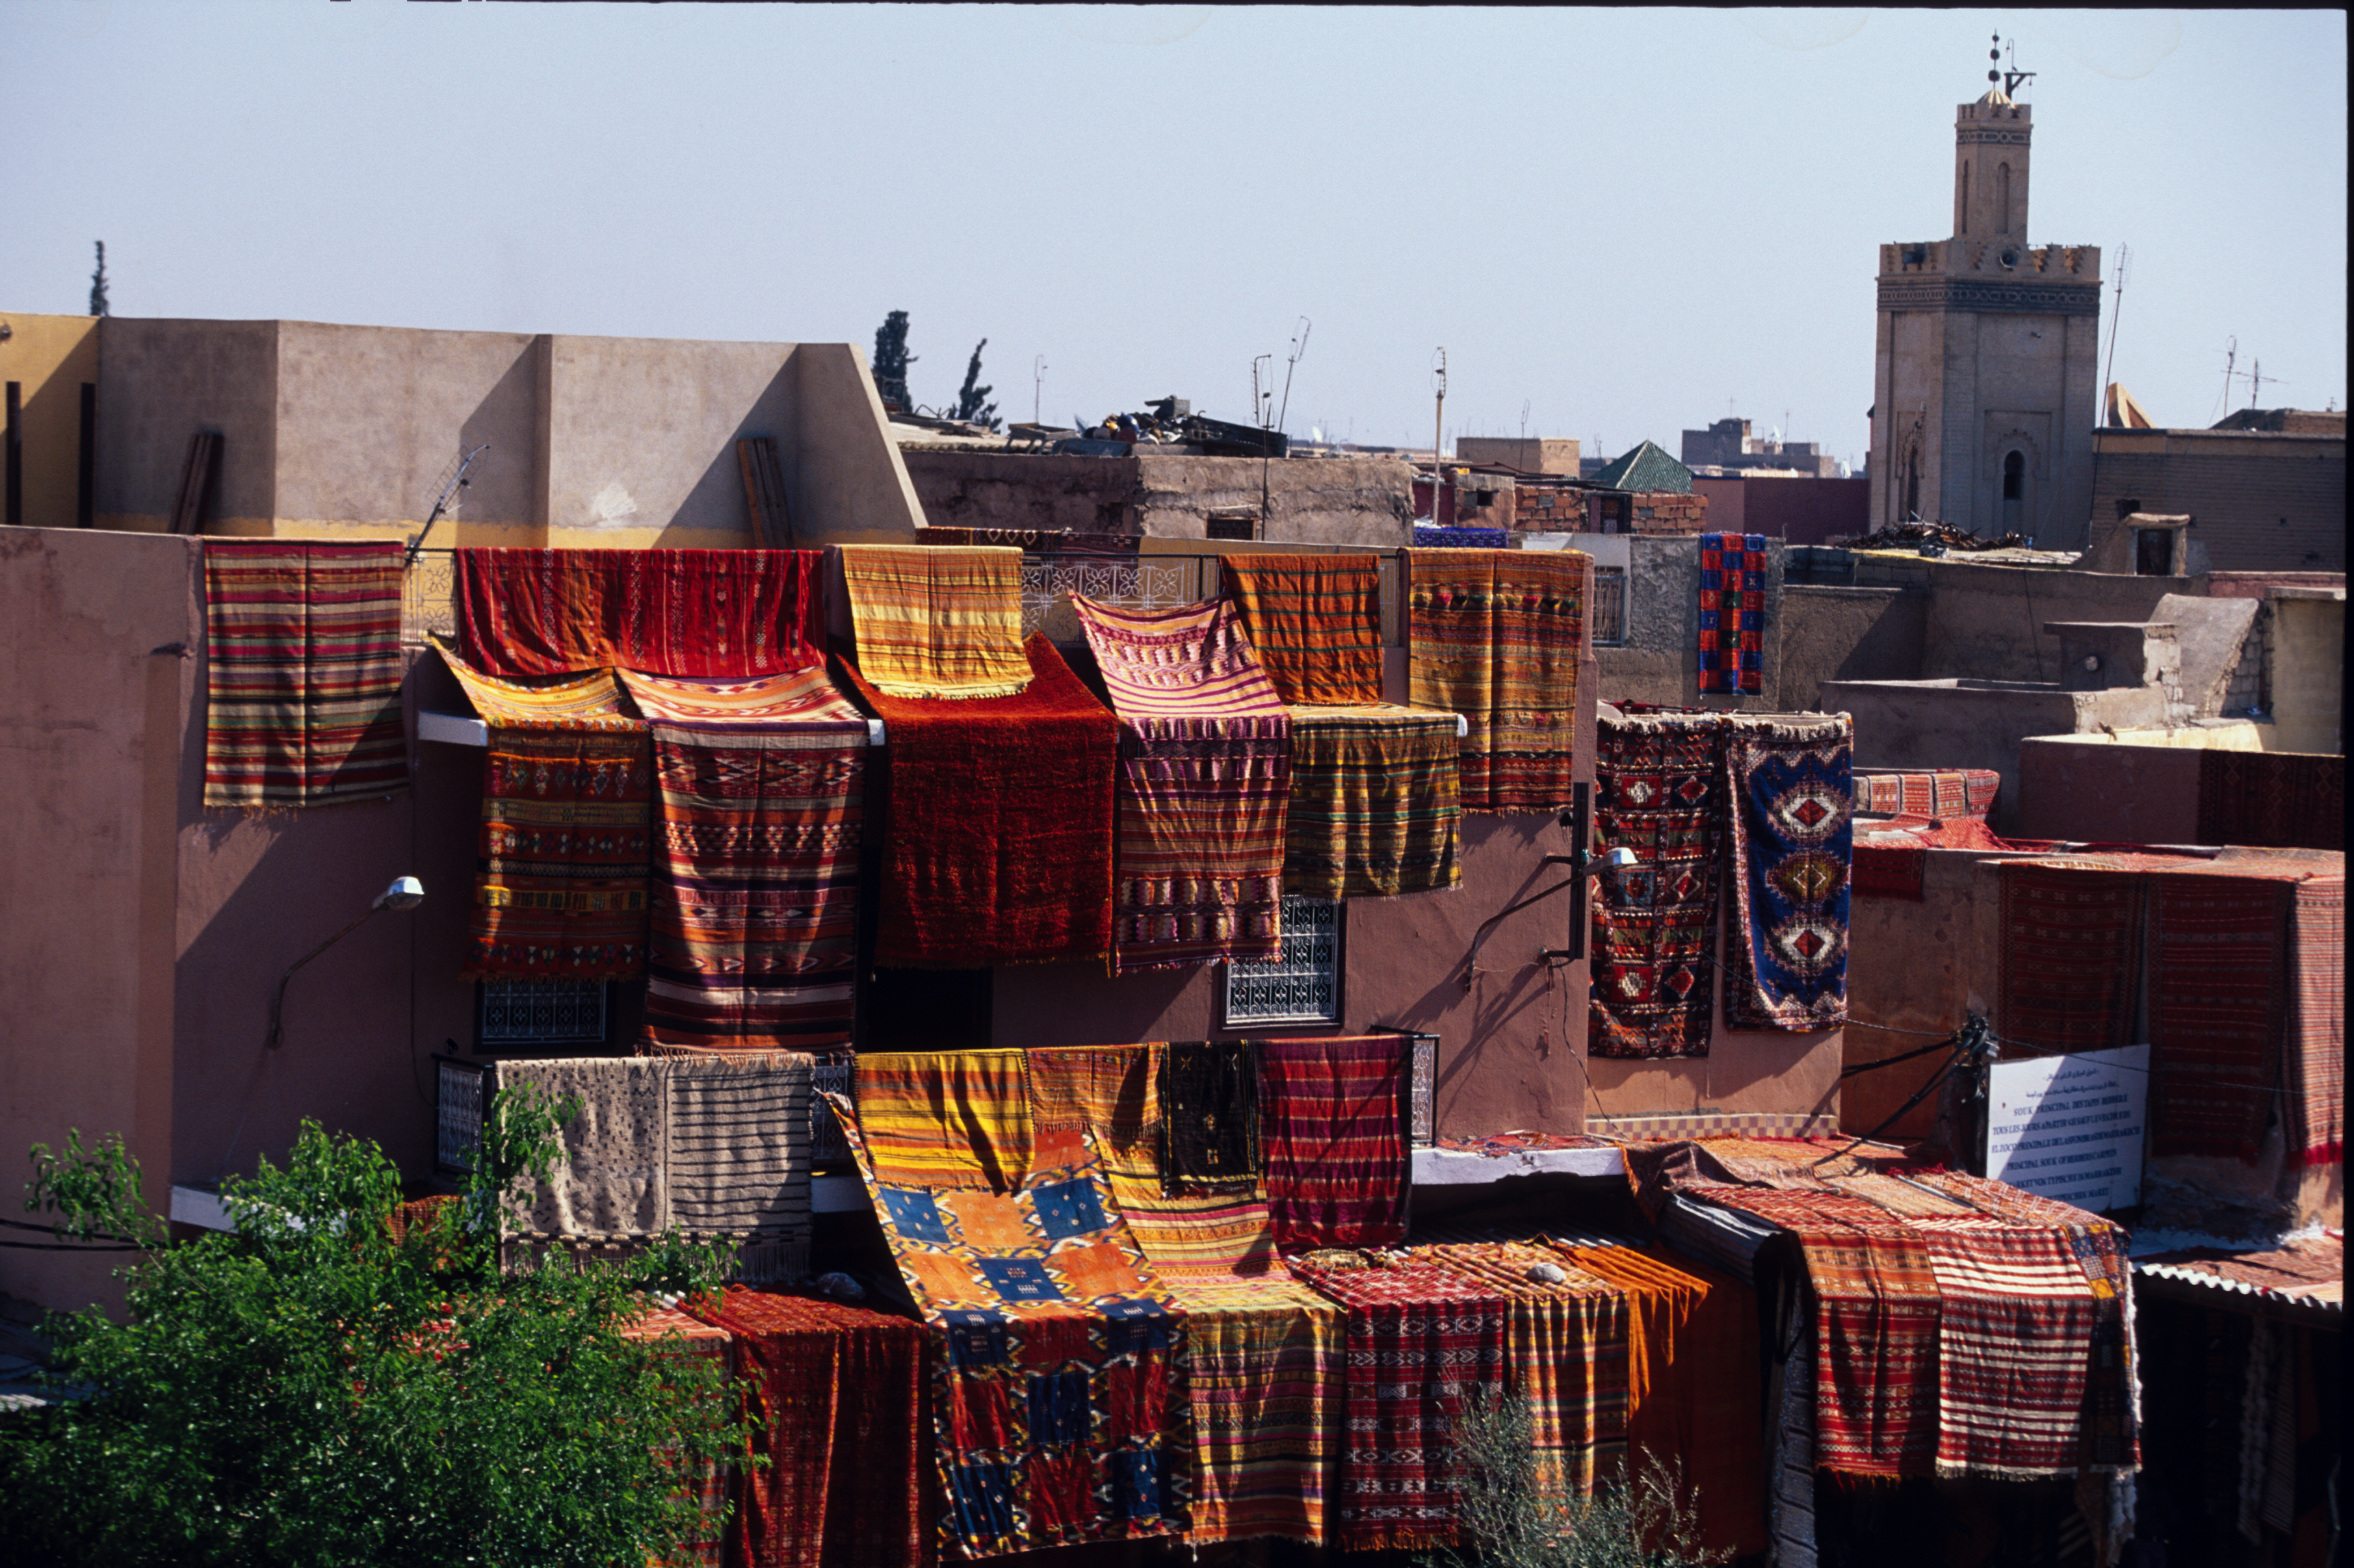 The best things to see and do in Marrakech, from specialized souks to colourful gardens